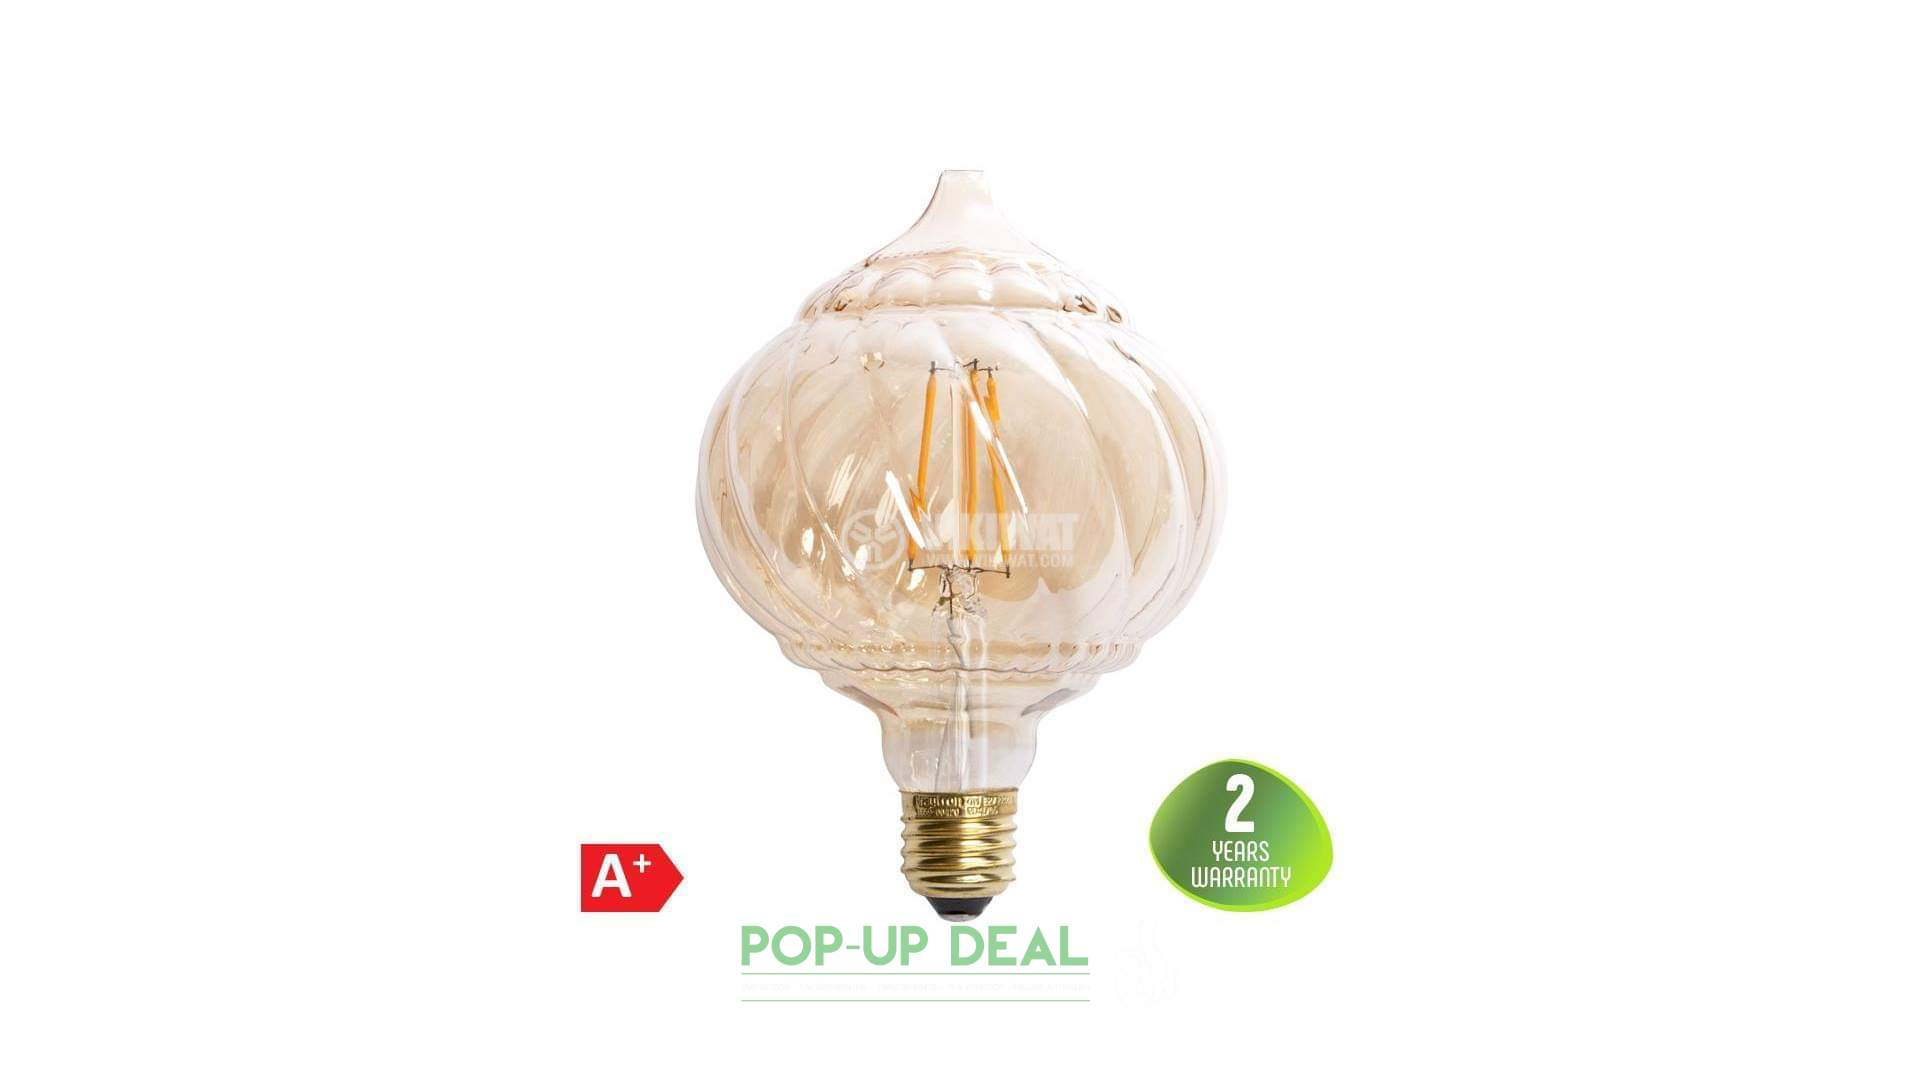 Decoratieve Lamp Met 1.5 Verlichting Led Lampen Pop Up Deal